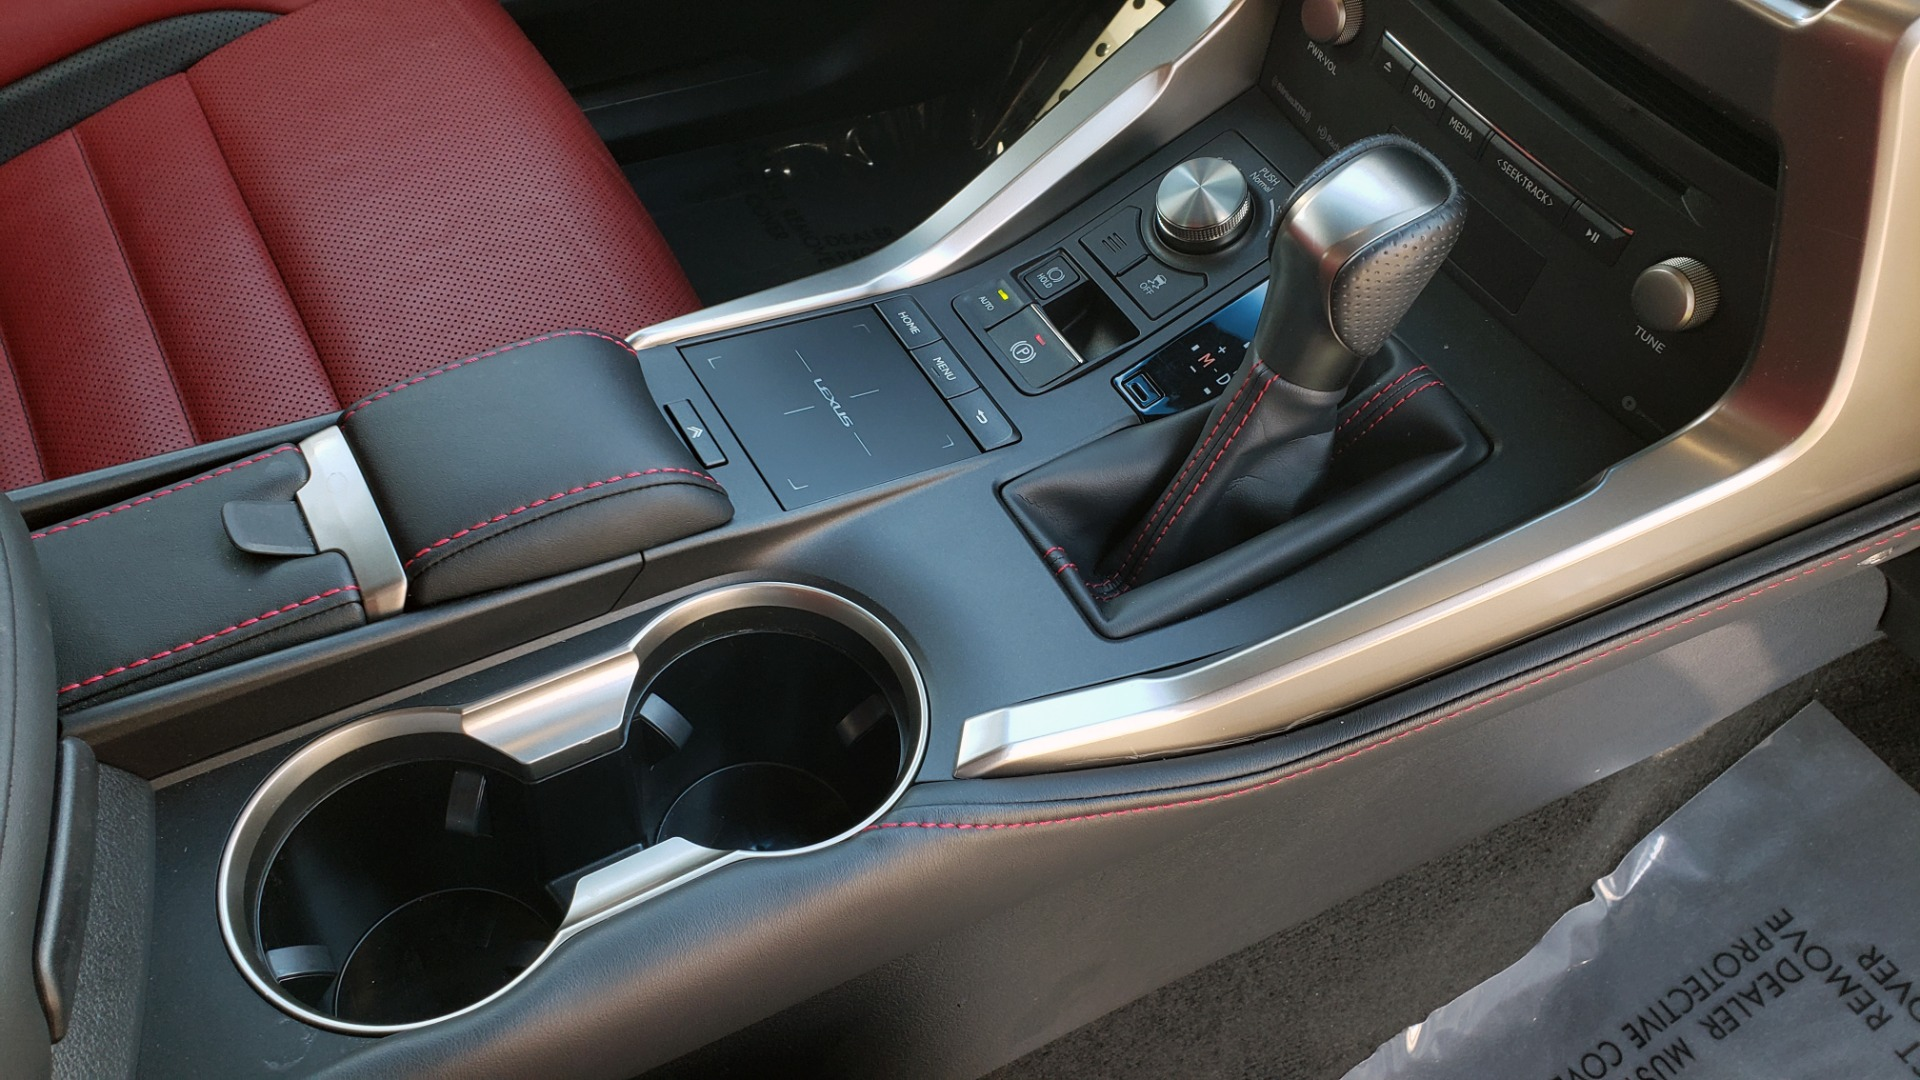 Used 2019 Lexus NX 300 F-SPORT / 2.0L TURBO / LEATHER / 18IN WHEELS / REARVIEW for sale $31,195 at Formula Imports in Charlotte NC 28227 73